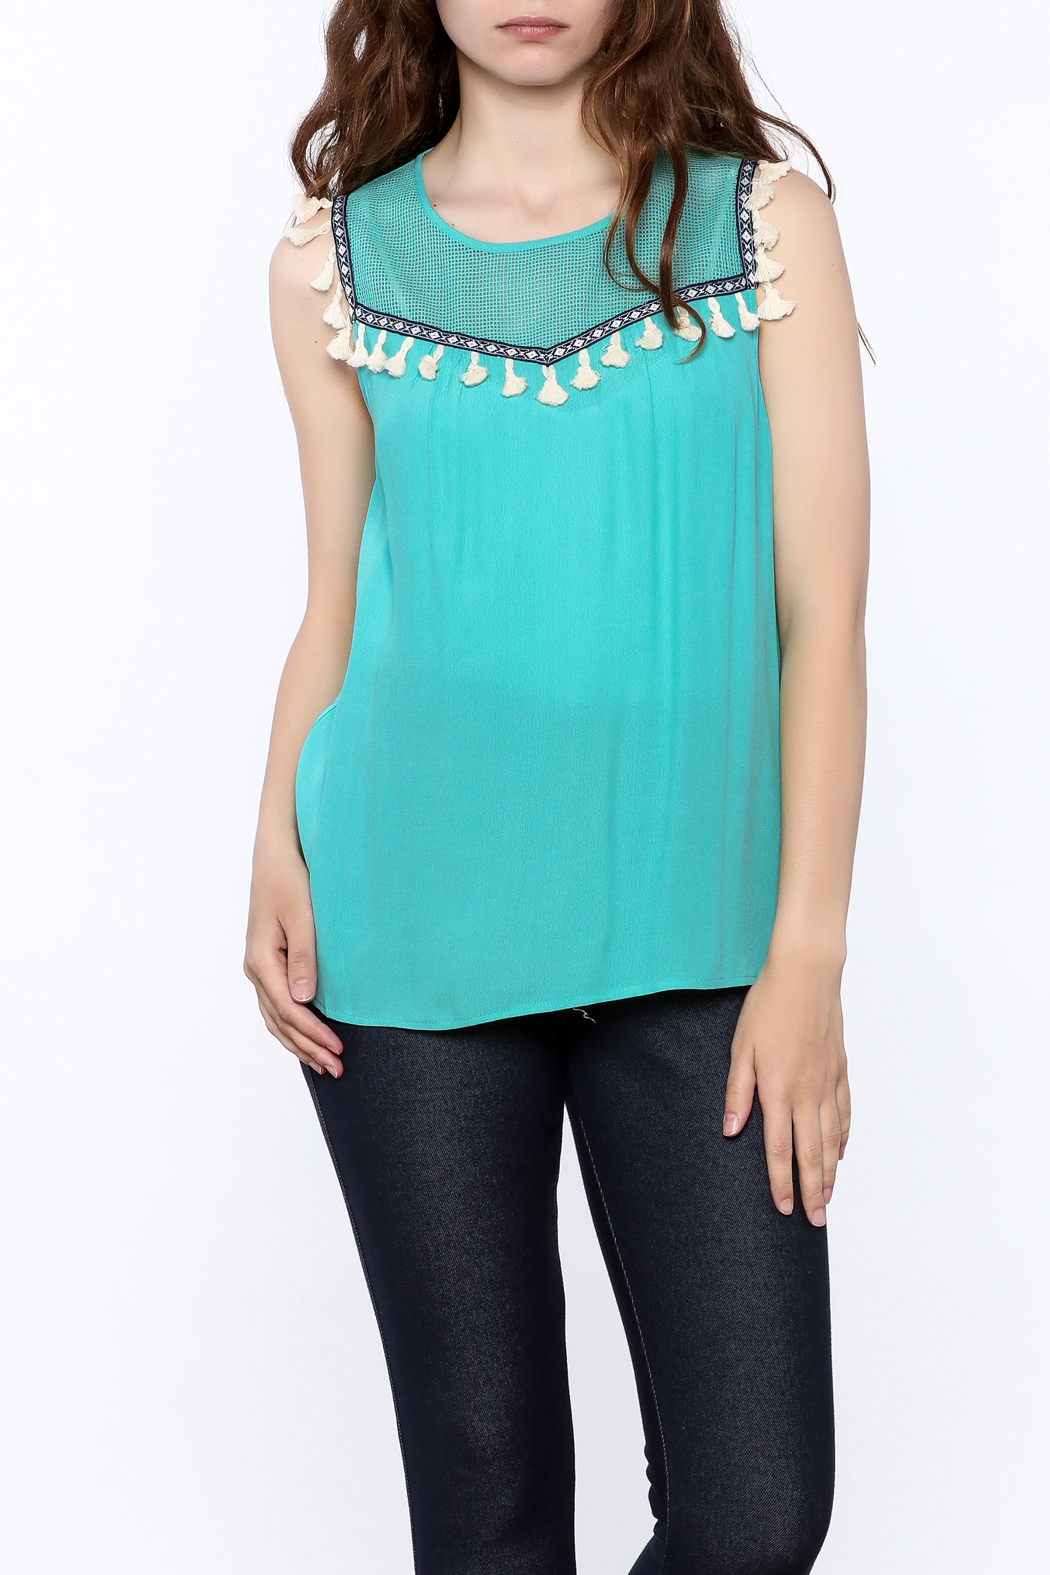 THML Clothing Aqua Tassel Top - Front Cropped Image